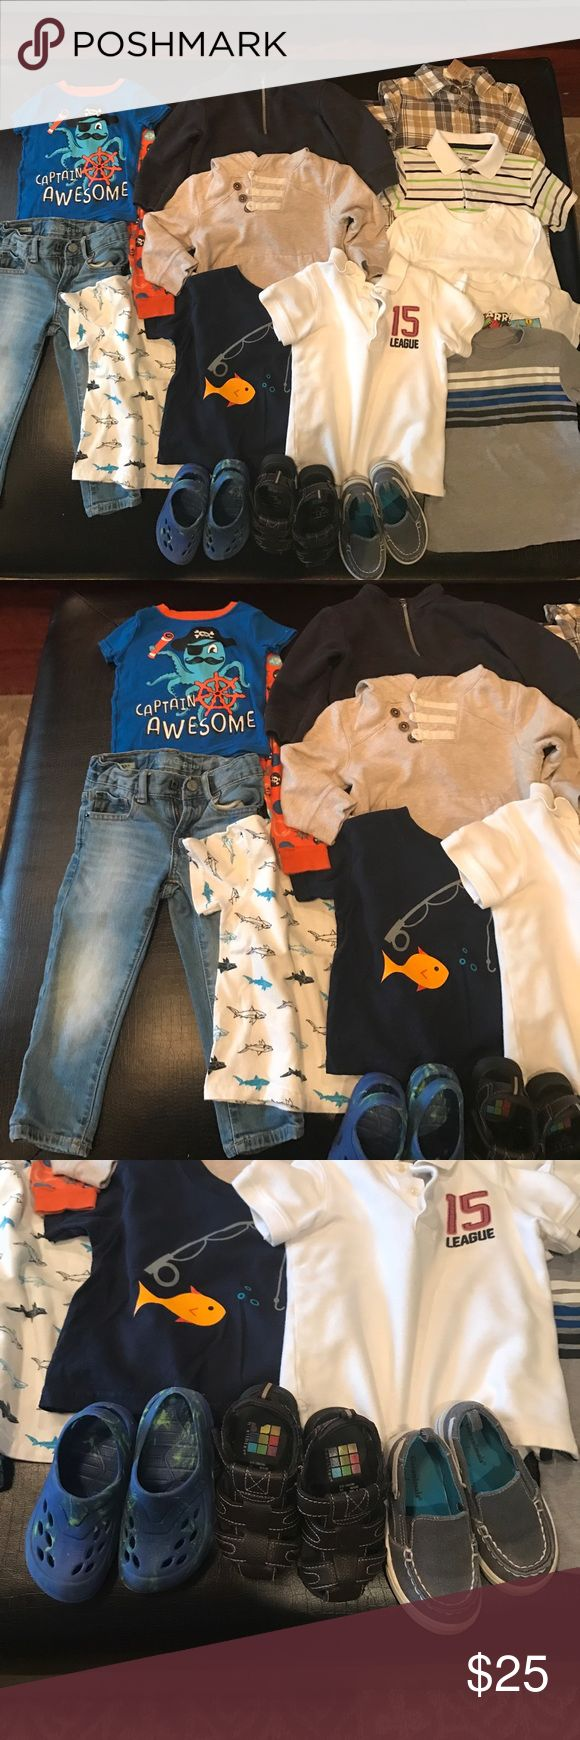 Boys 2T Bundle!!! Awesome boys 2T bundle includes 15 great staple pieces!!: 4 t-shirts 1 long sleeve tee 2 polo-style shirts 1 NWT button down  1 pair pajamas 3 pair shoes size 7/8 2 pullovers 1 pair BabyGAP jeans Other